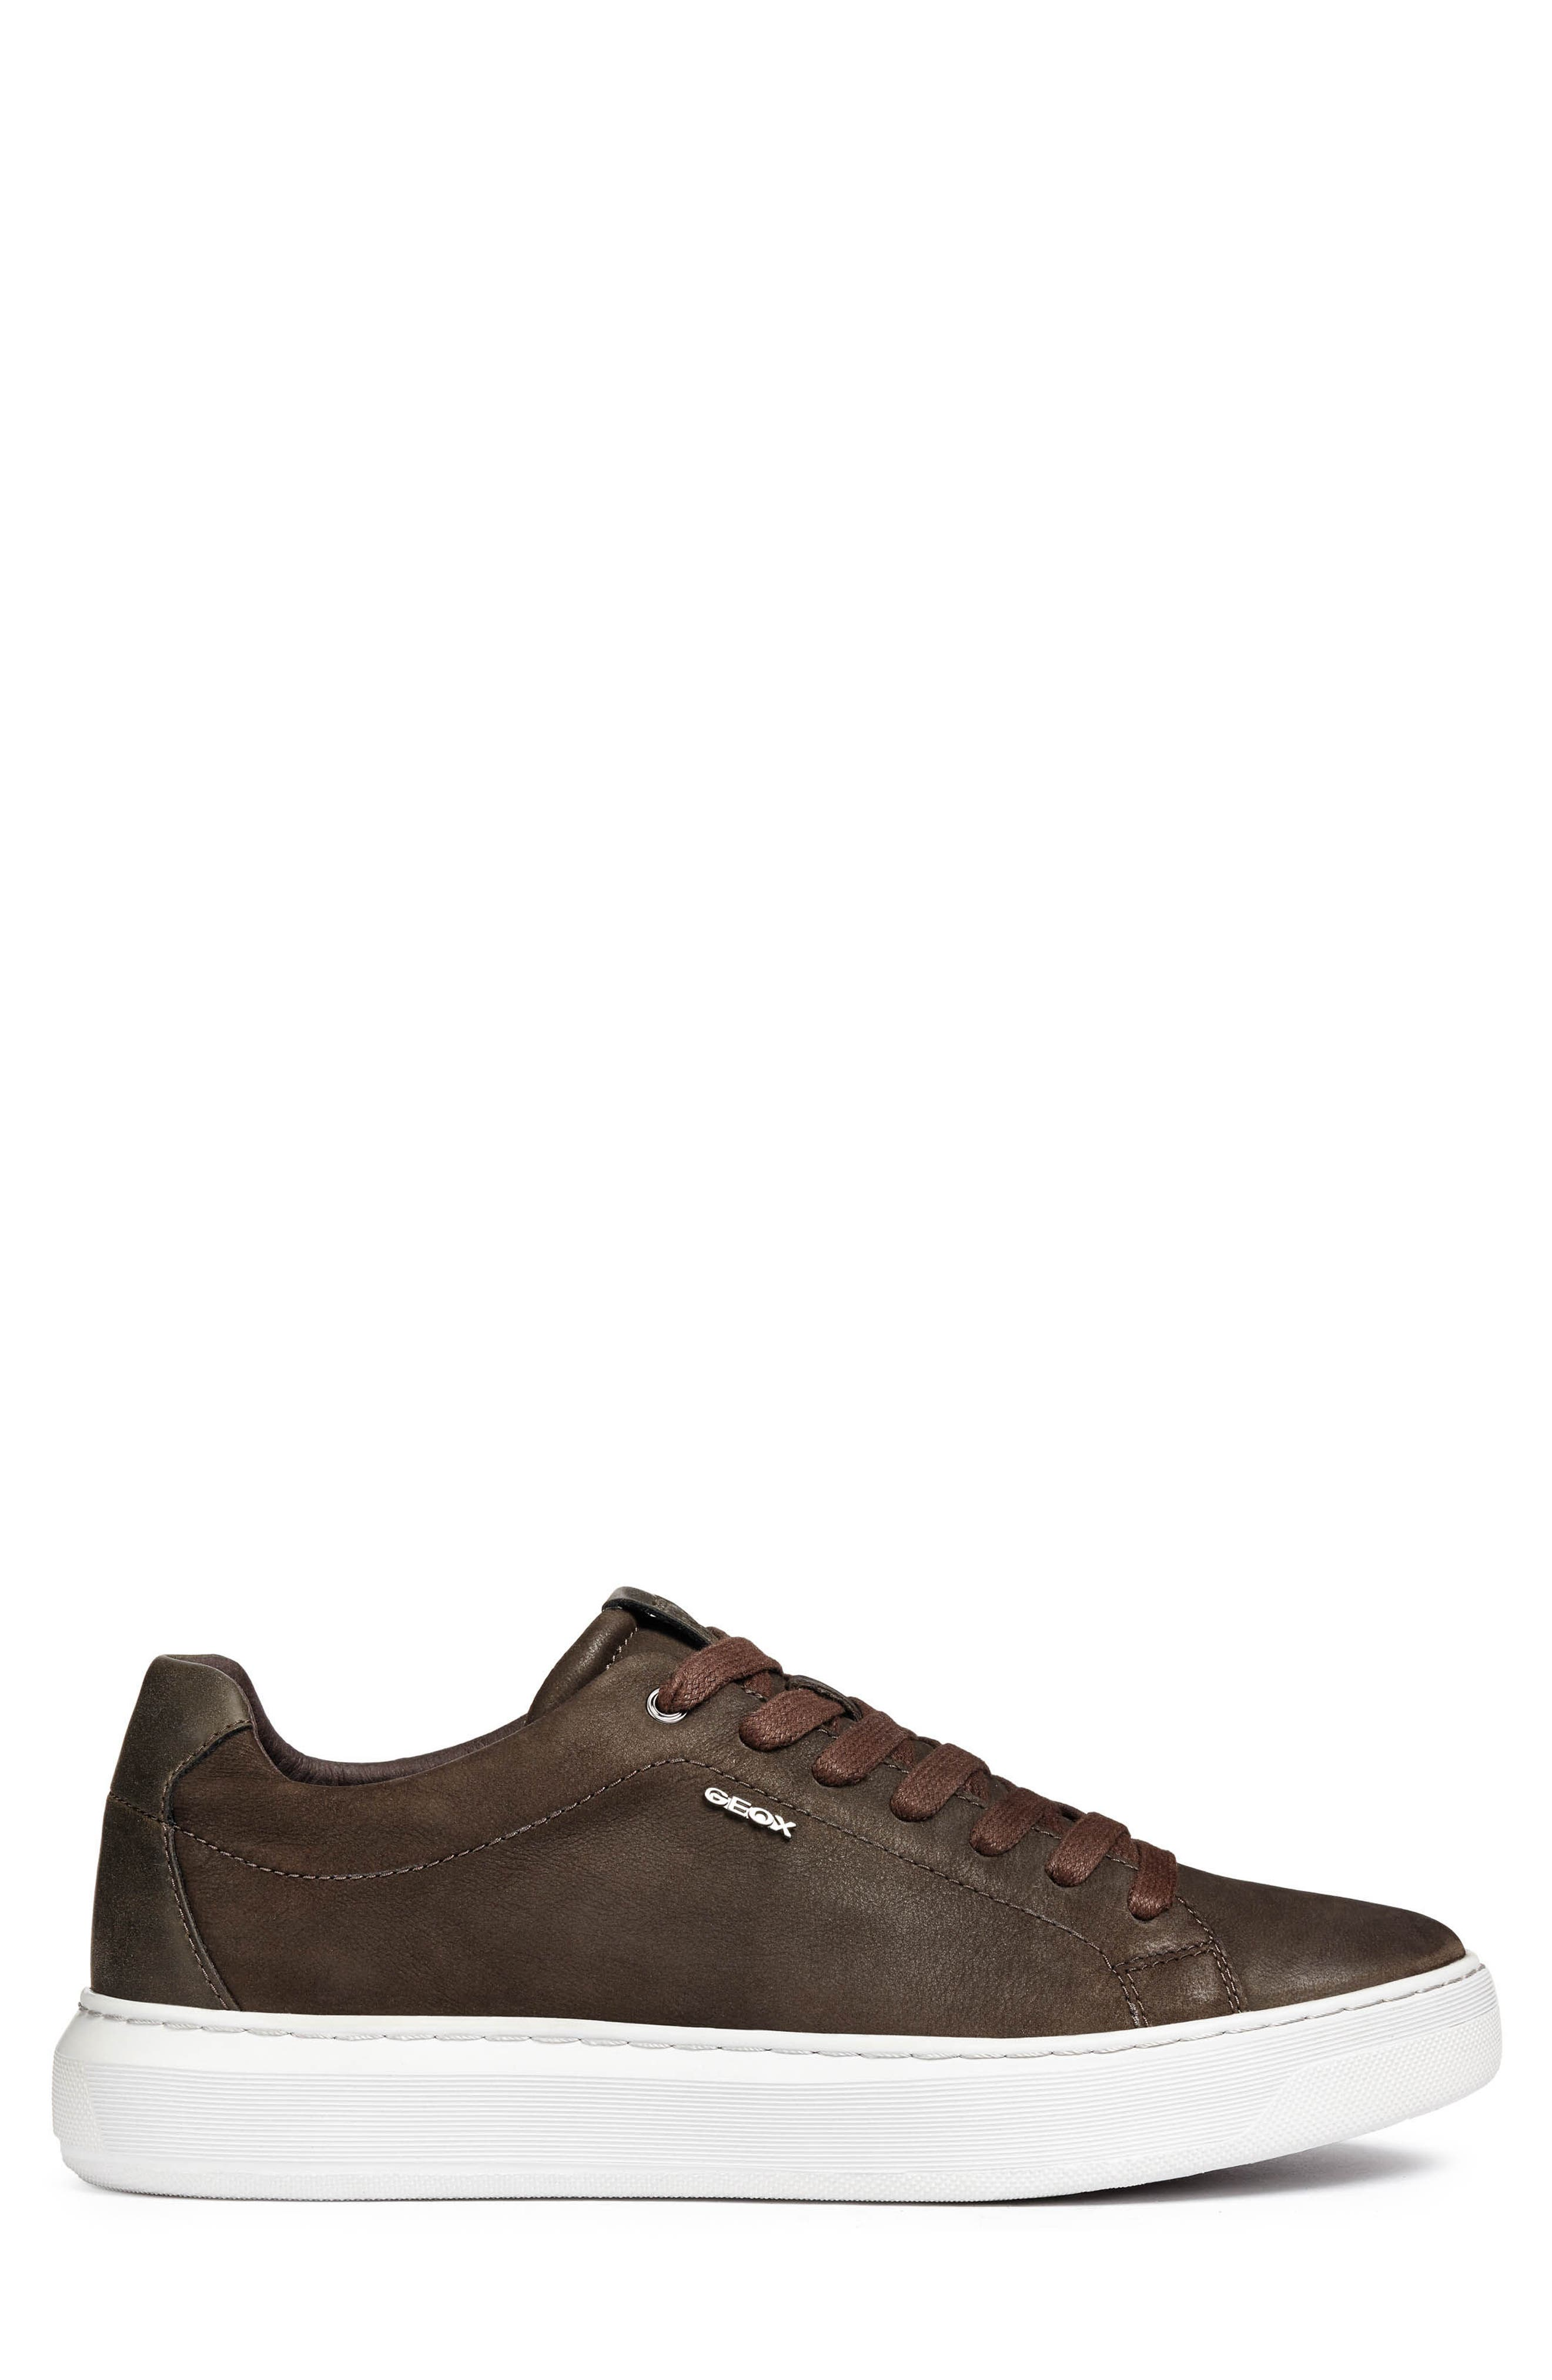 Deiven 5 Low Top Sneaker,                             Alternate thumbnail 3, color,                             DARK COFFEE LEATHER